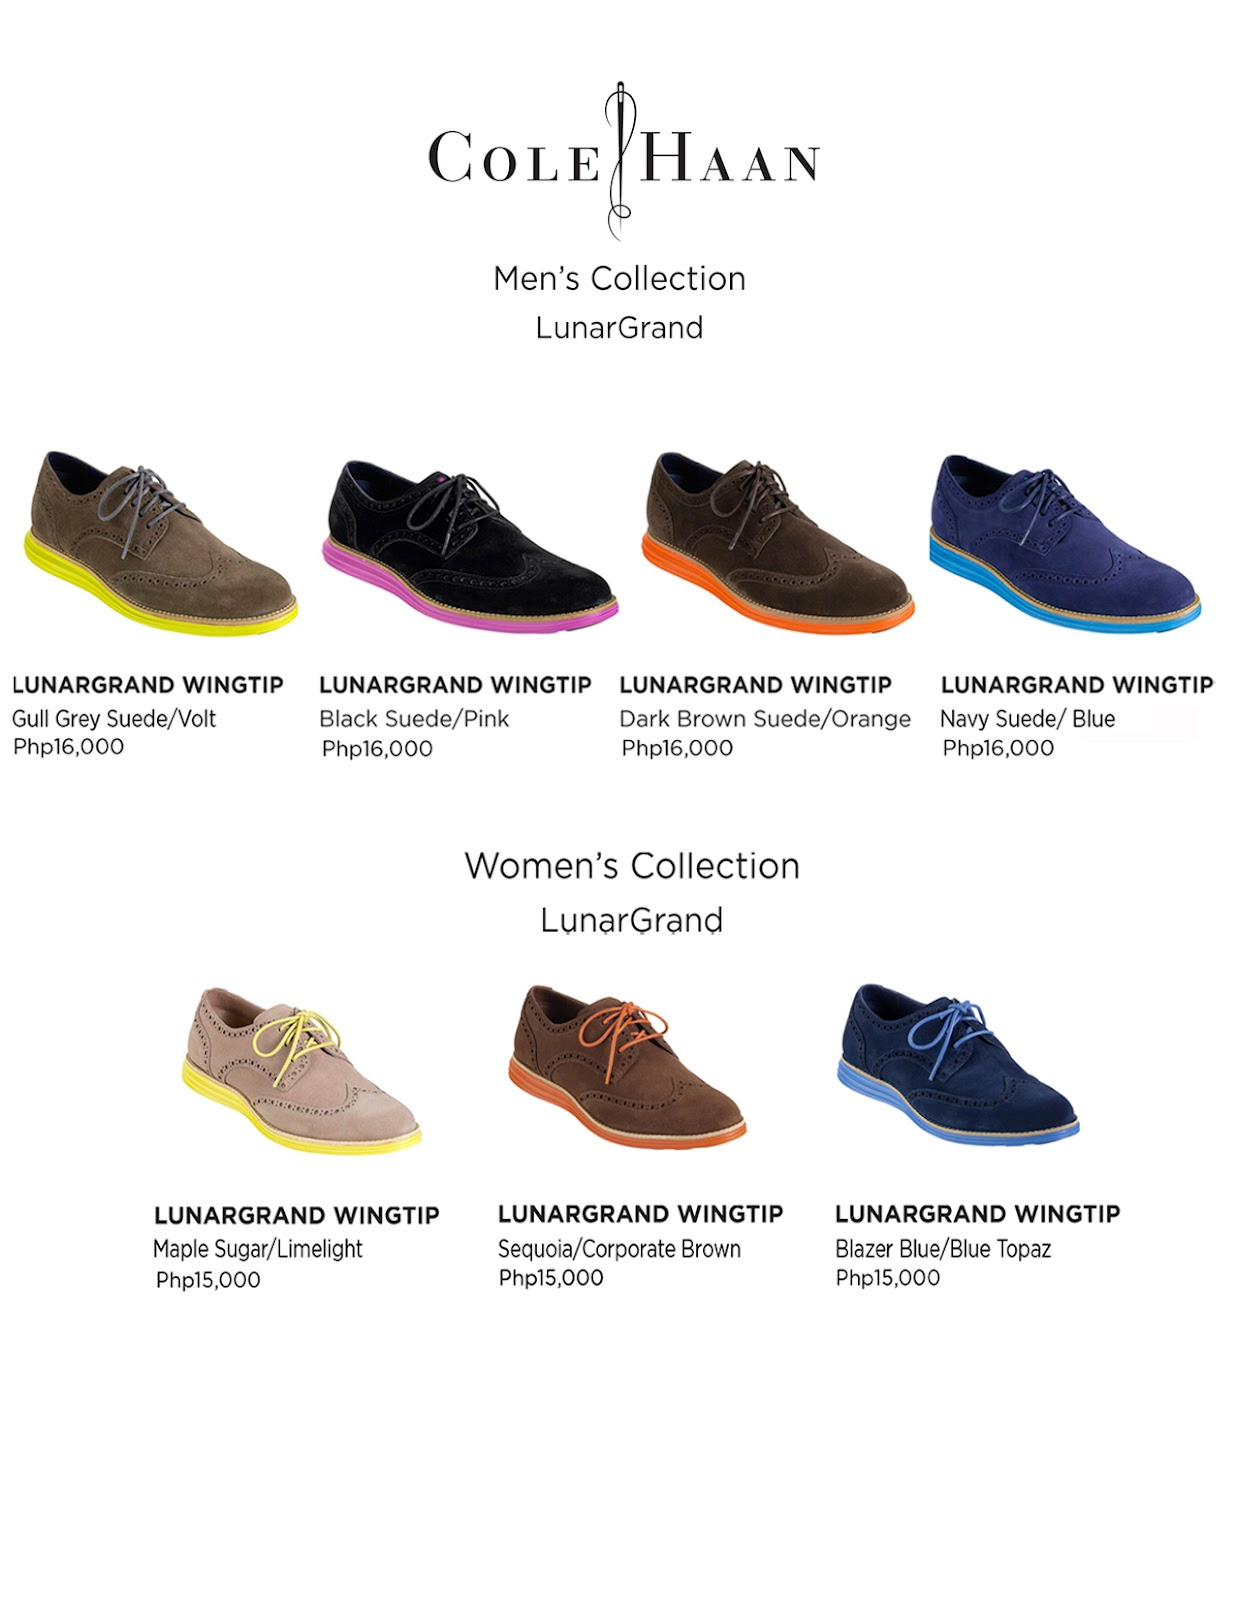 Do Cole Haan Womens Shoes Run True To Size